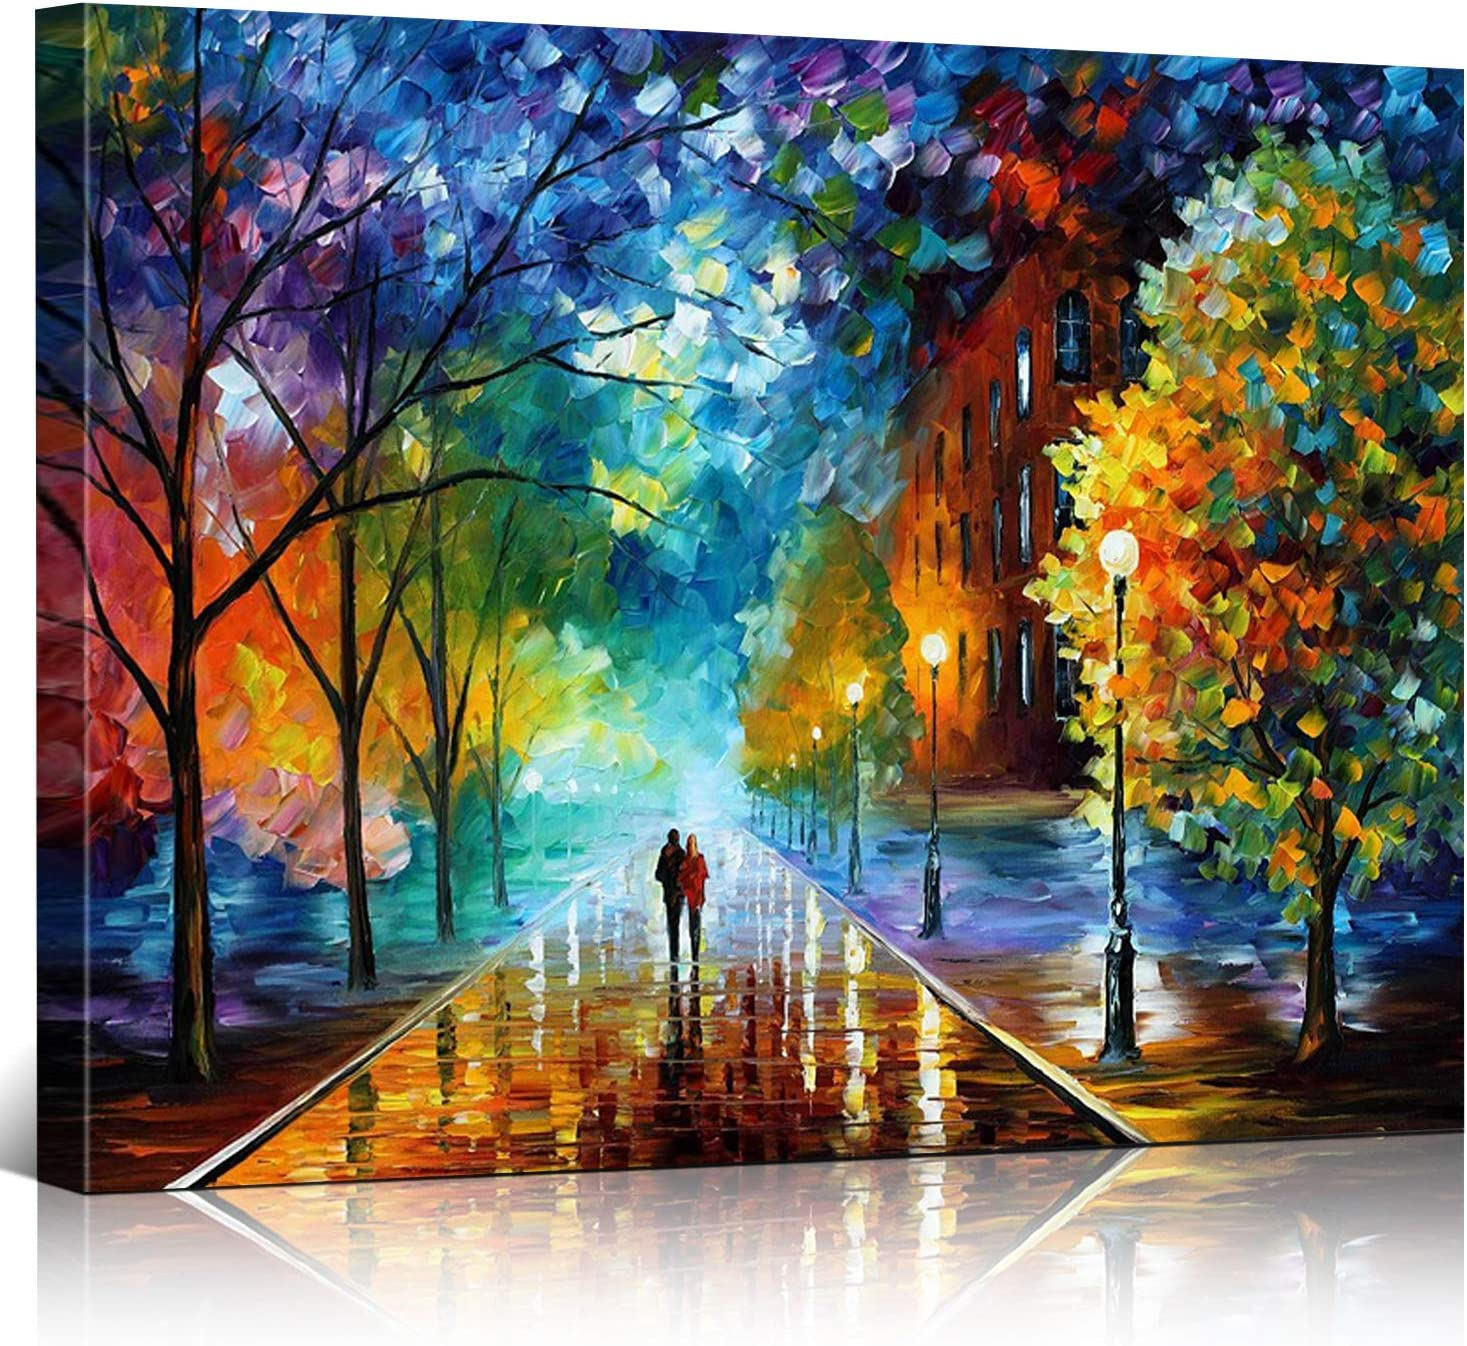 Amazon.com: Rihe DIY Oil Painting Paint By Numbers Kits with Brushes and  Acrylic Pigment for Adults Kids Beginner - Romantic Night 16x20 Inch(Wooden  framed): Paintings